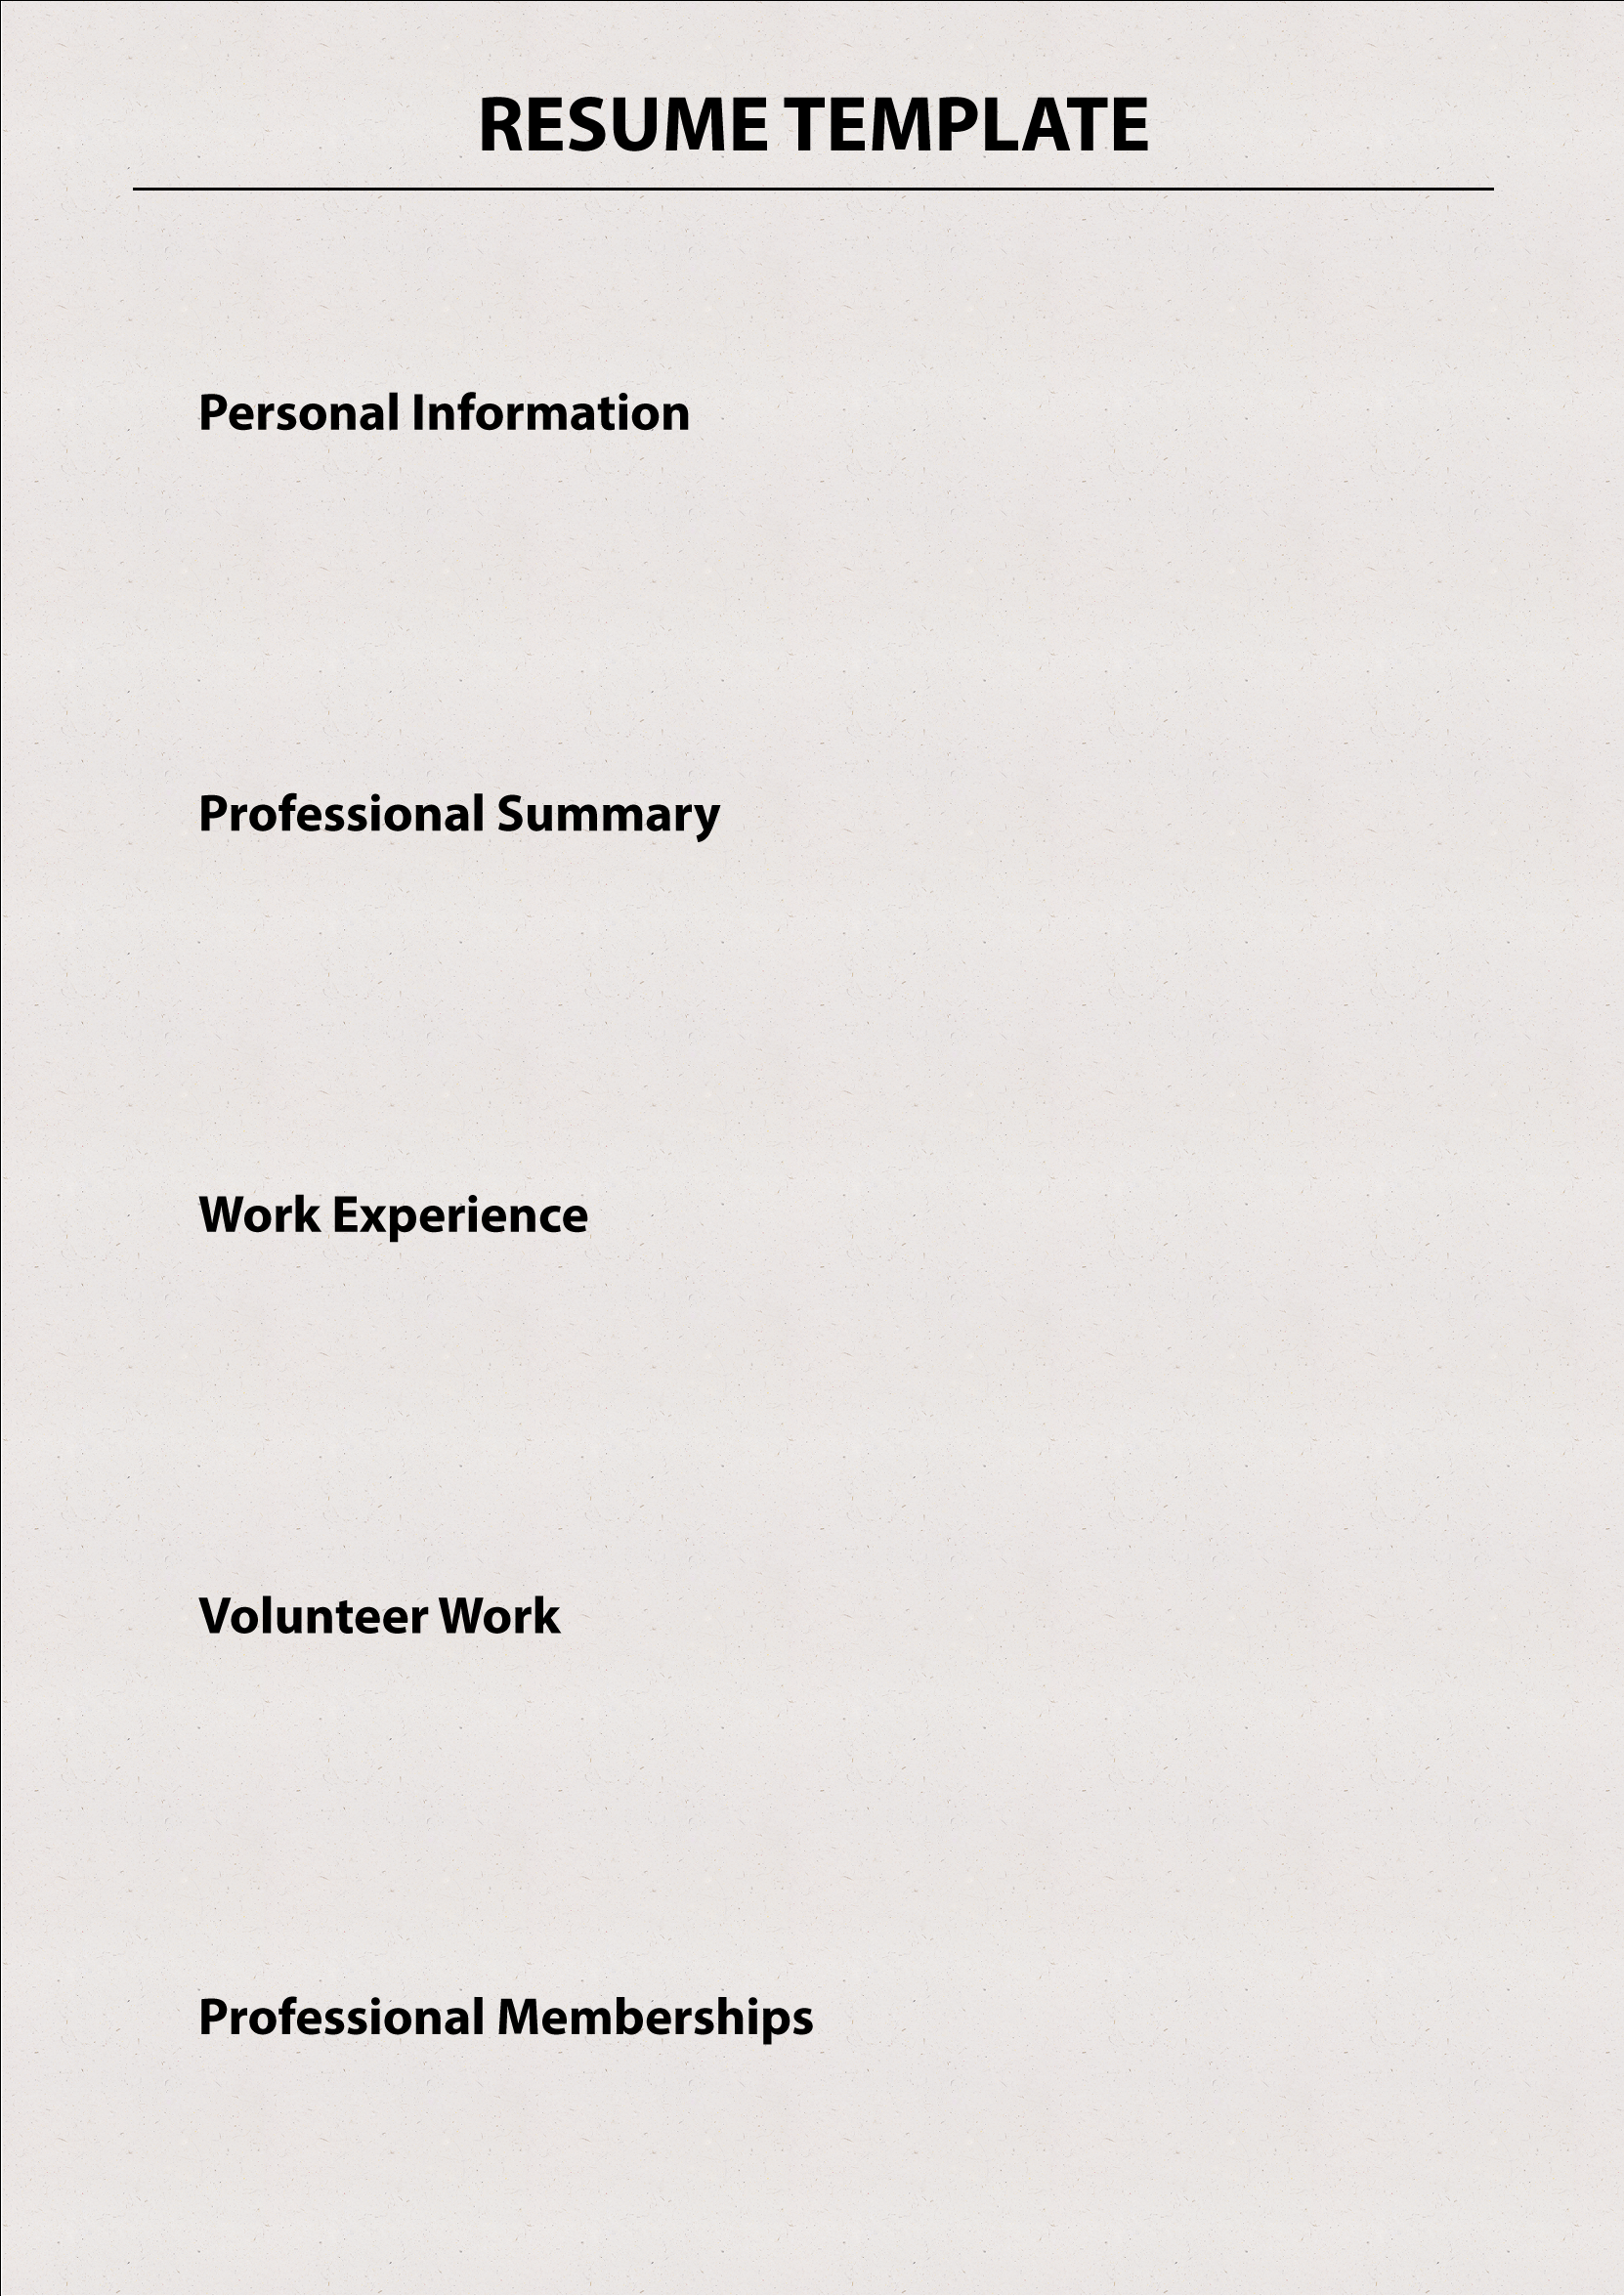 chronological resume template vertical media solutions